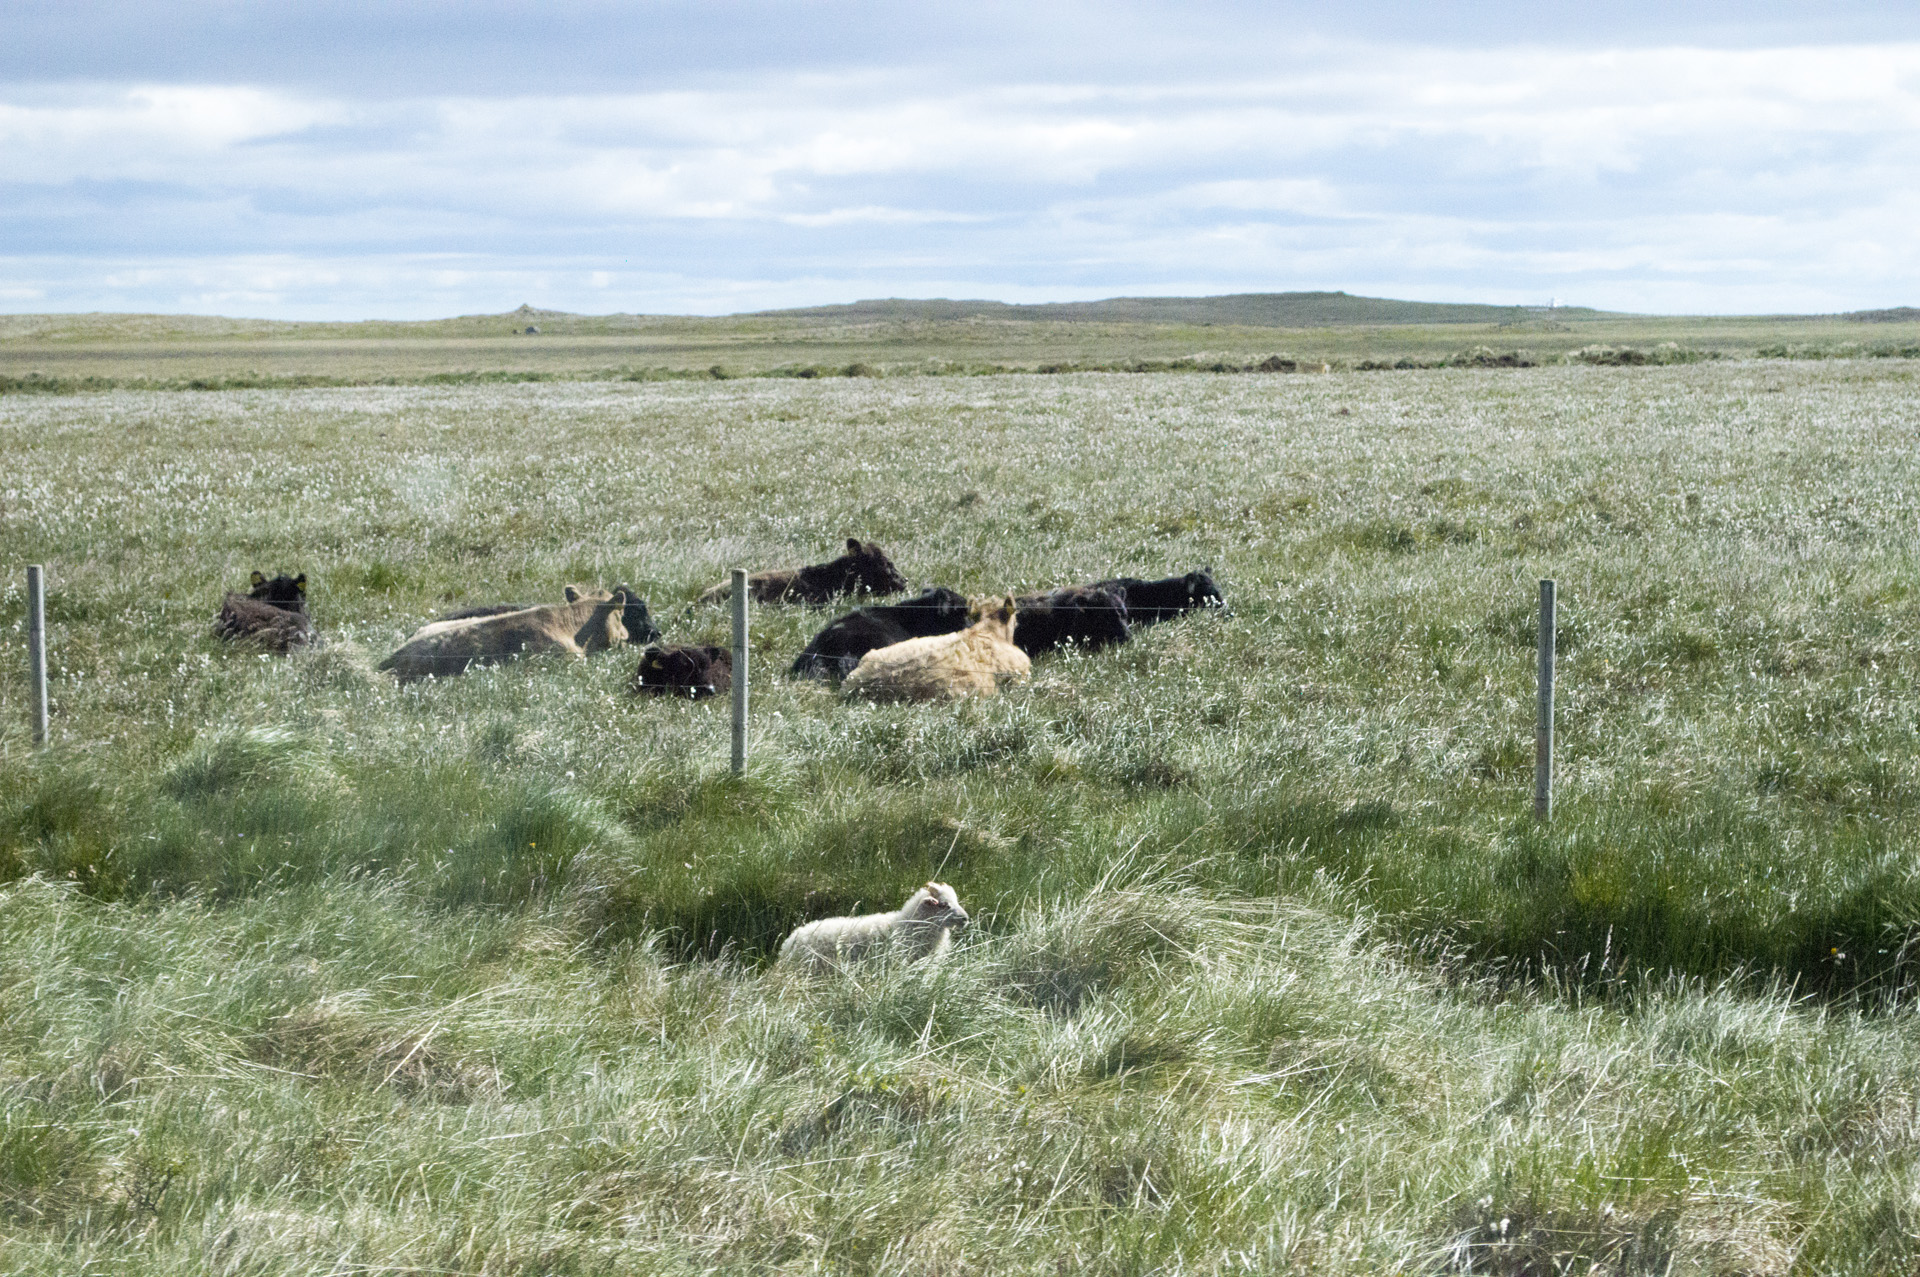 Cows in a field and sheep along the side of Snæfellsnesvegur, Vesturland region, Iceland.